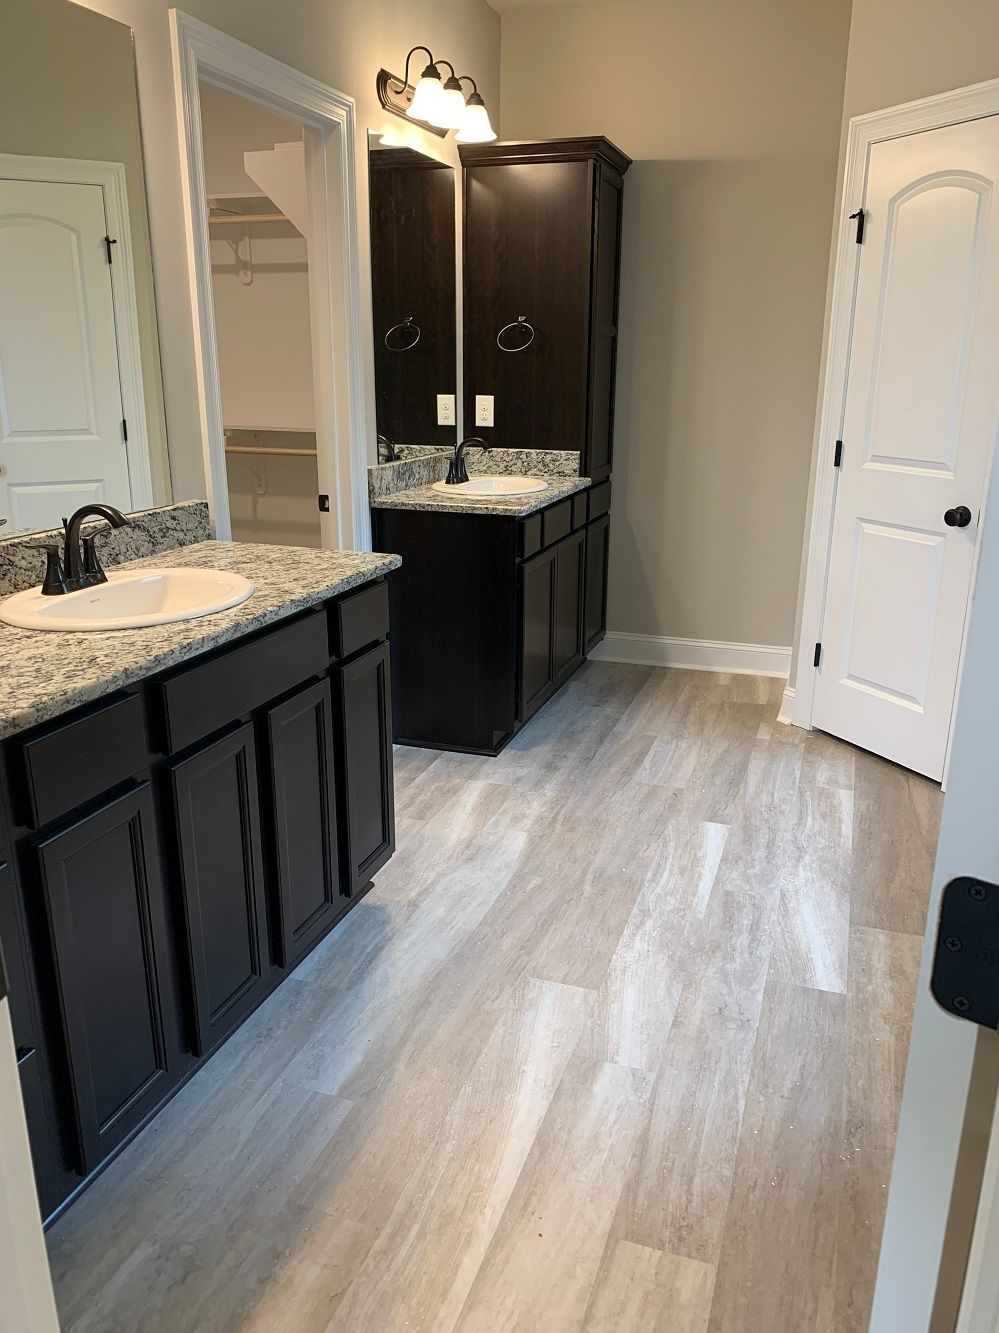 Bathroom featured in the Sansa II A By DSLD Homes - Louisiana in Baton Rouge, LA